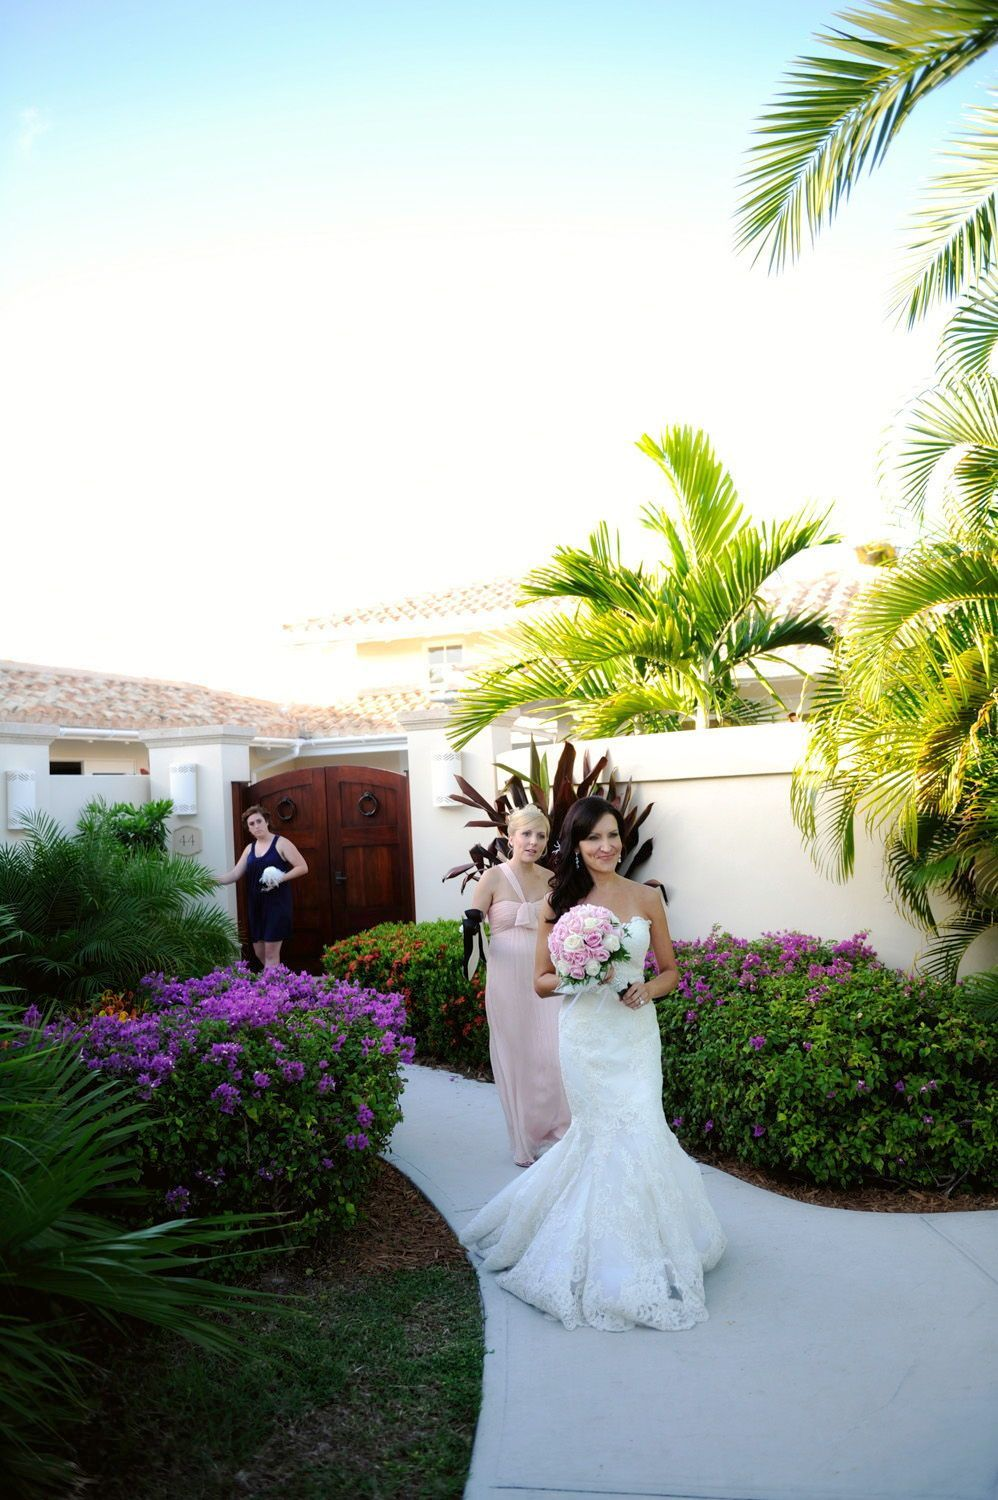 Caribbean wedding dress  Kathi u Joeus absolutely amazing wedding at the beach of Jumby Bay